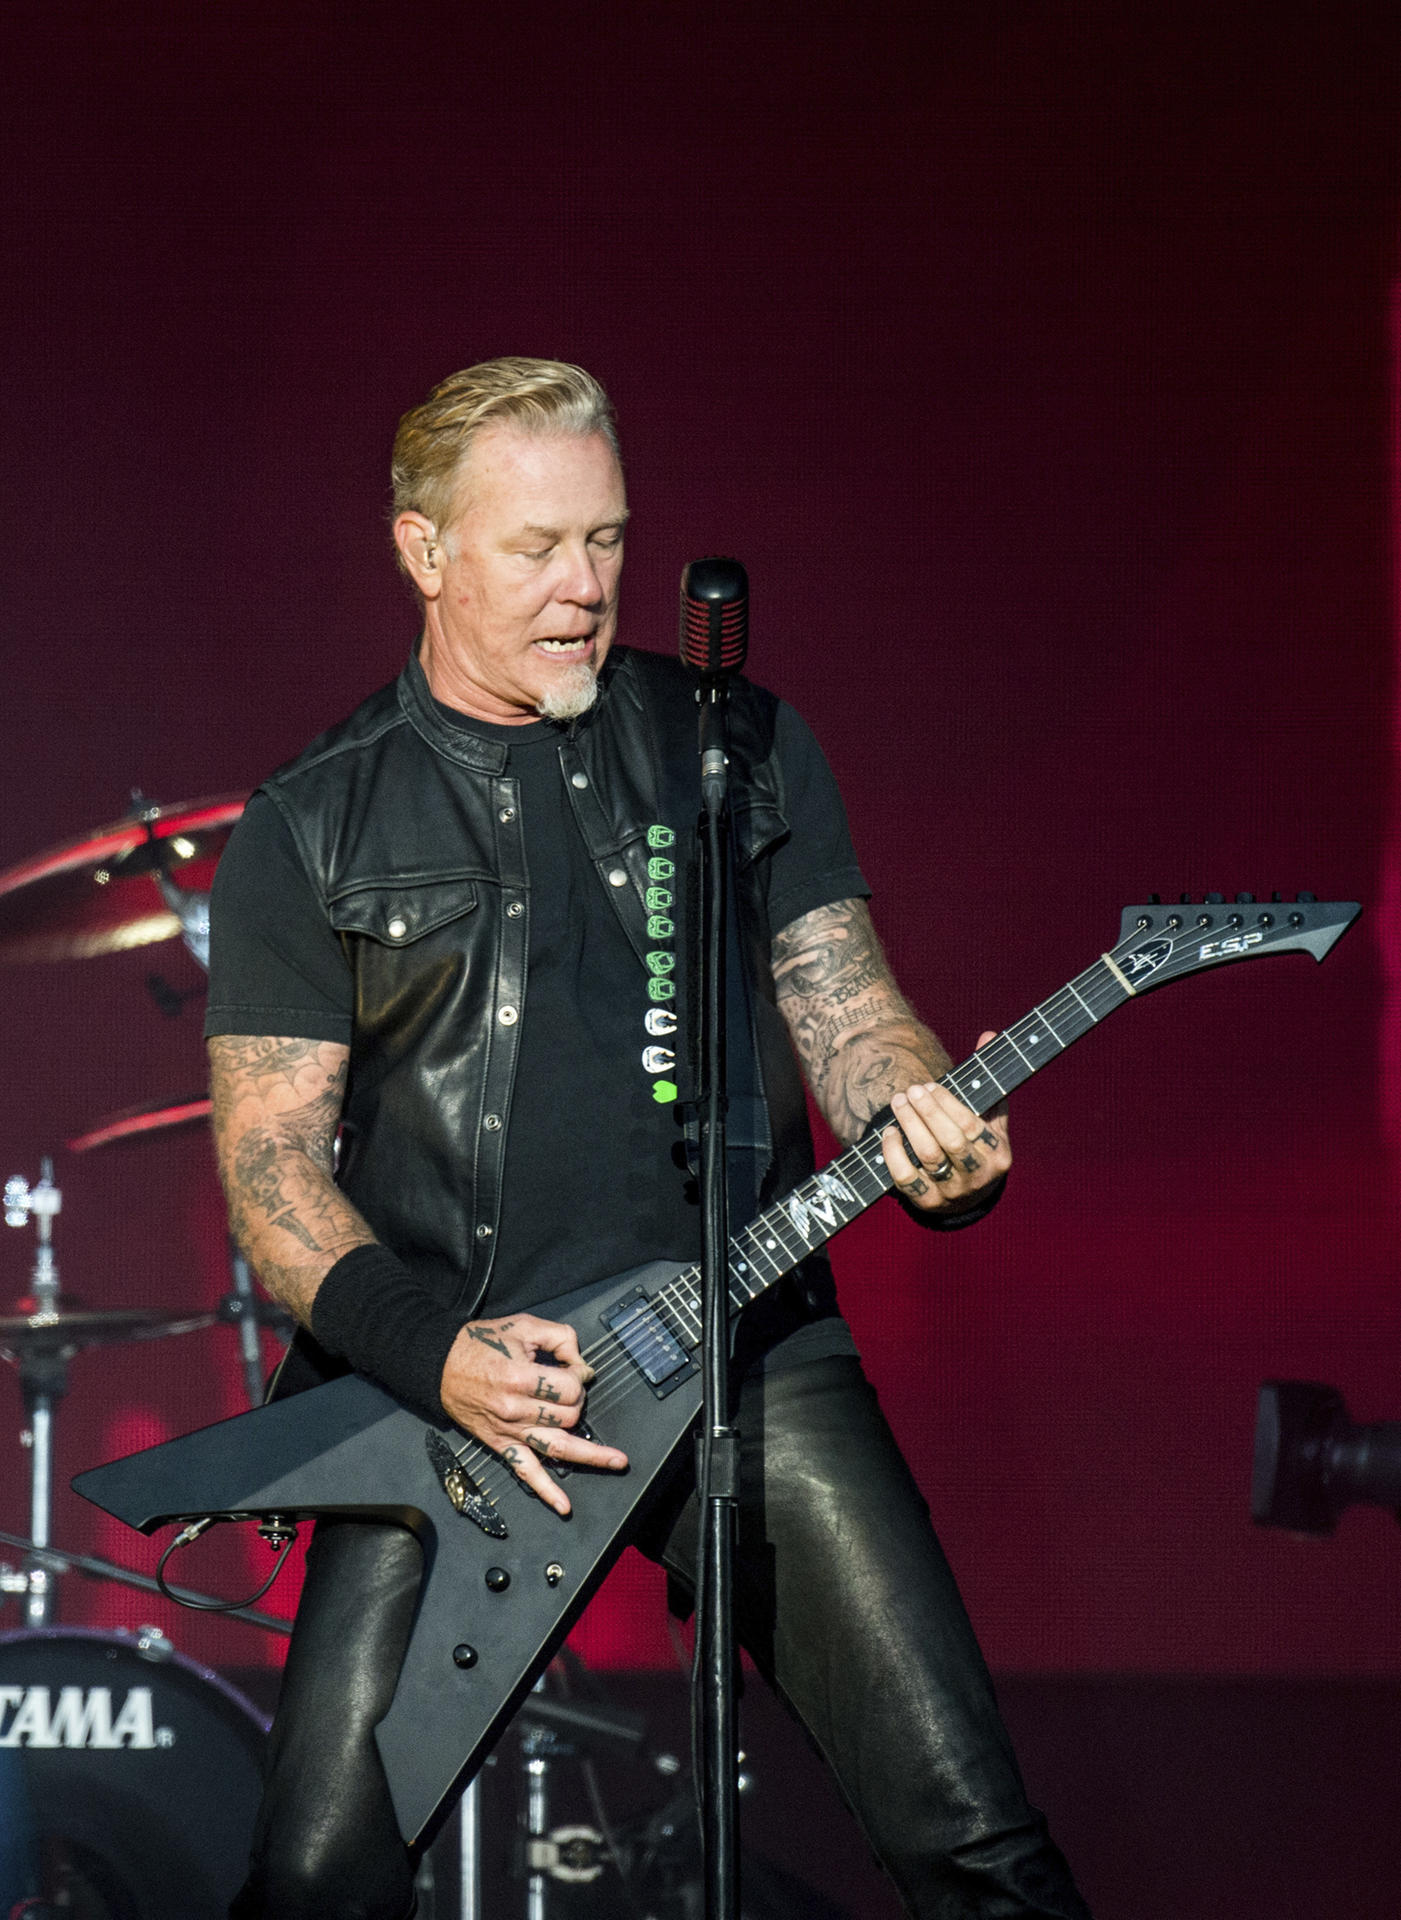 James hetfield tot | To people who hate Labrie